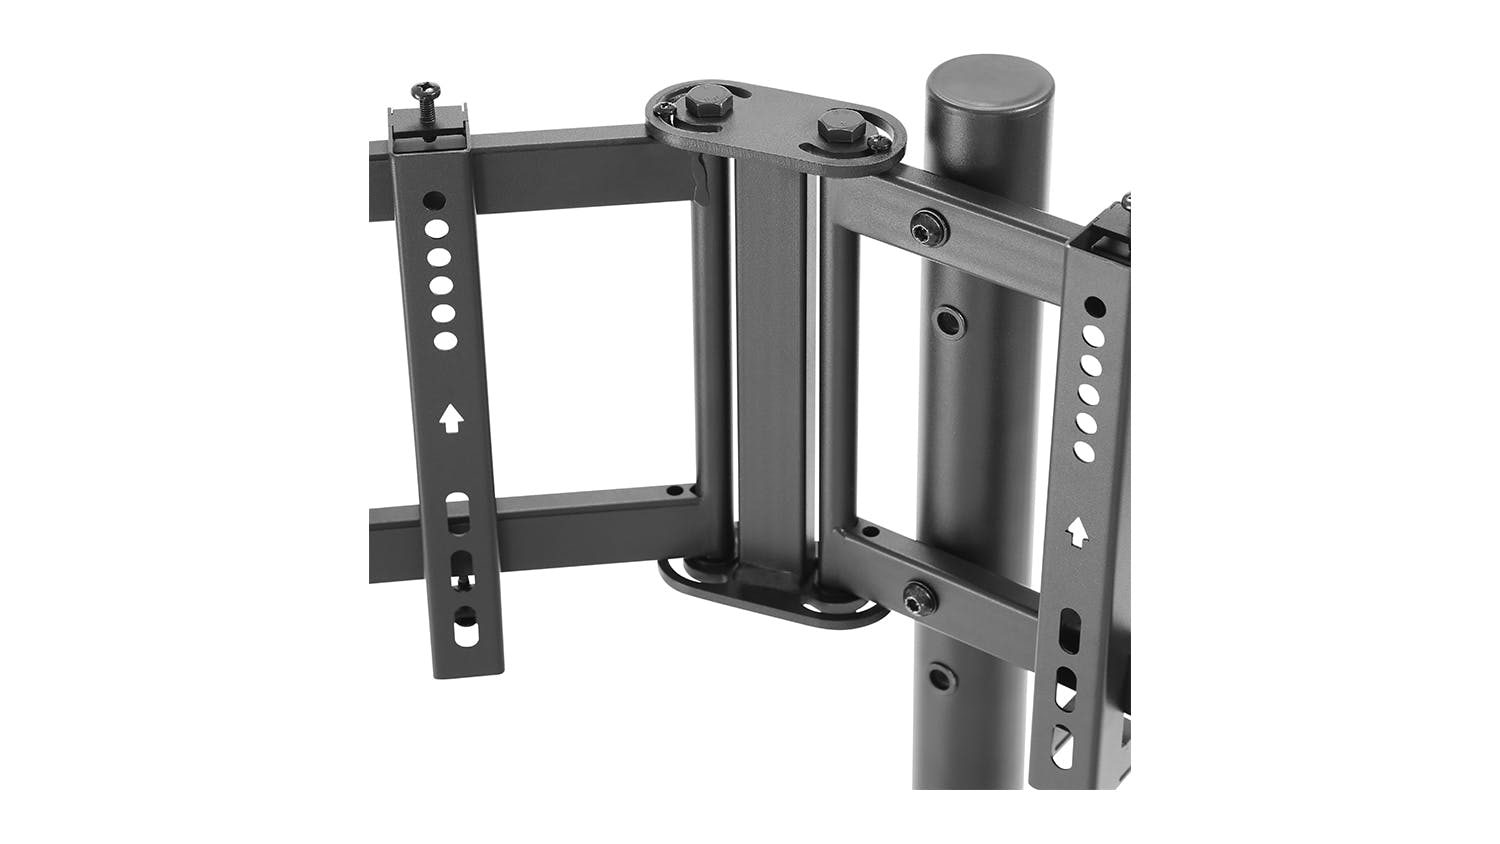 Konic 3 Screen Mount Stand